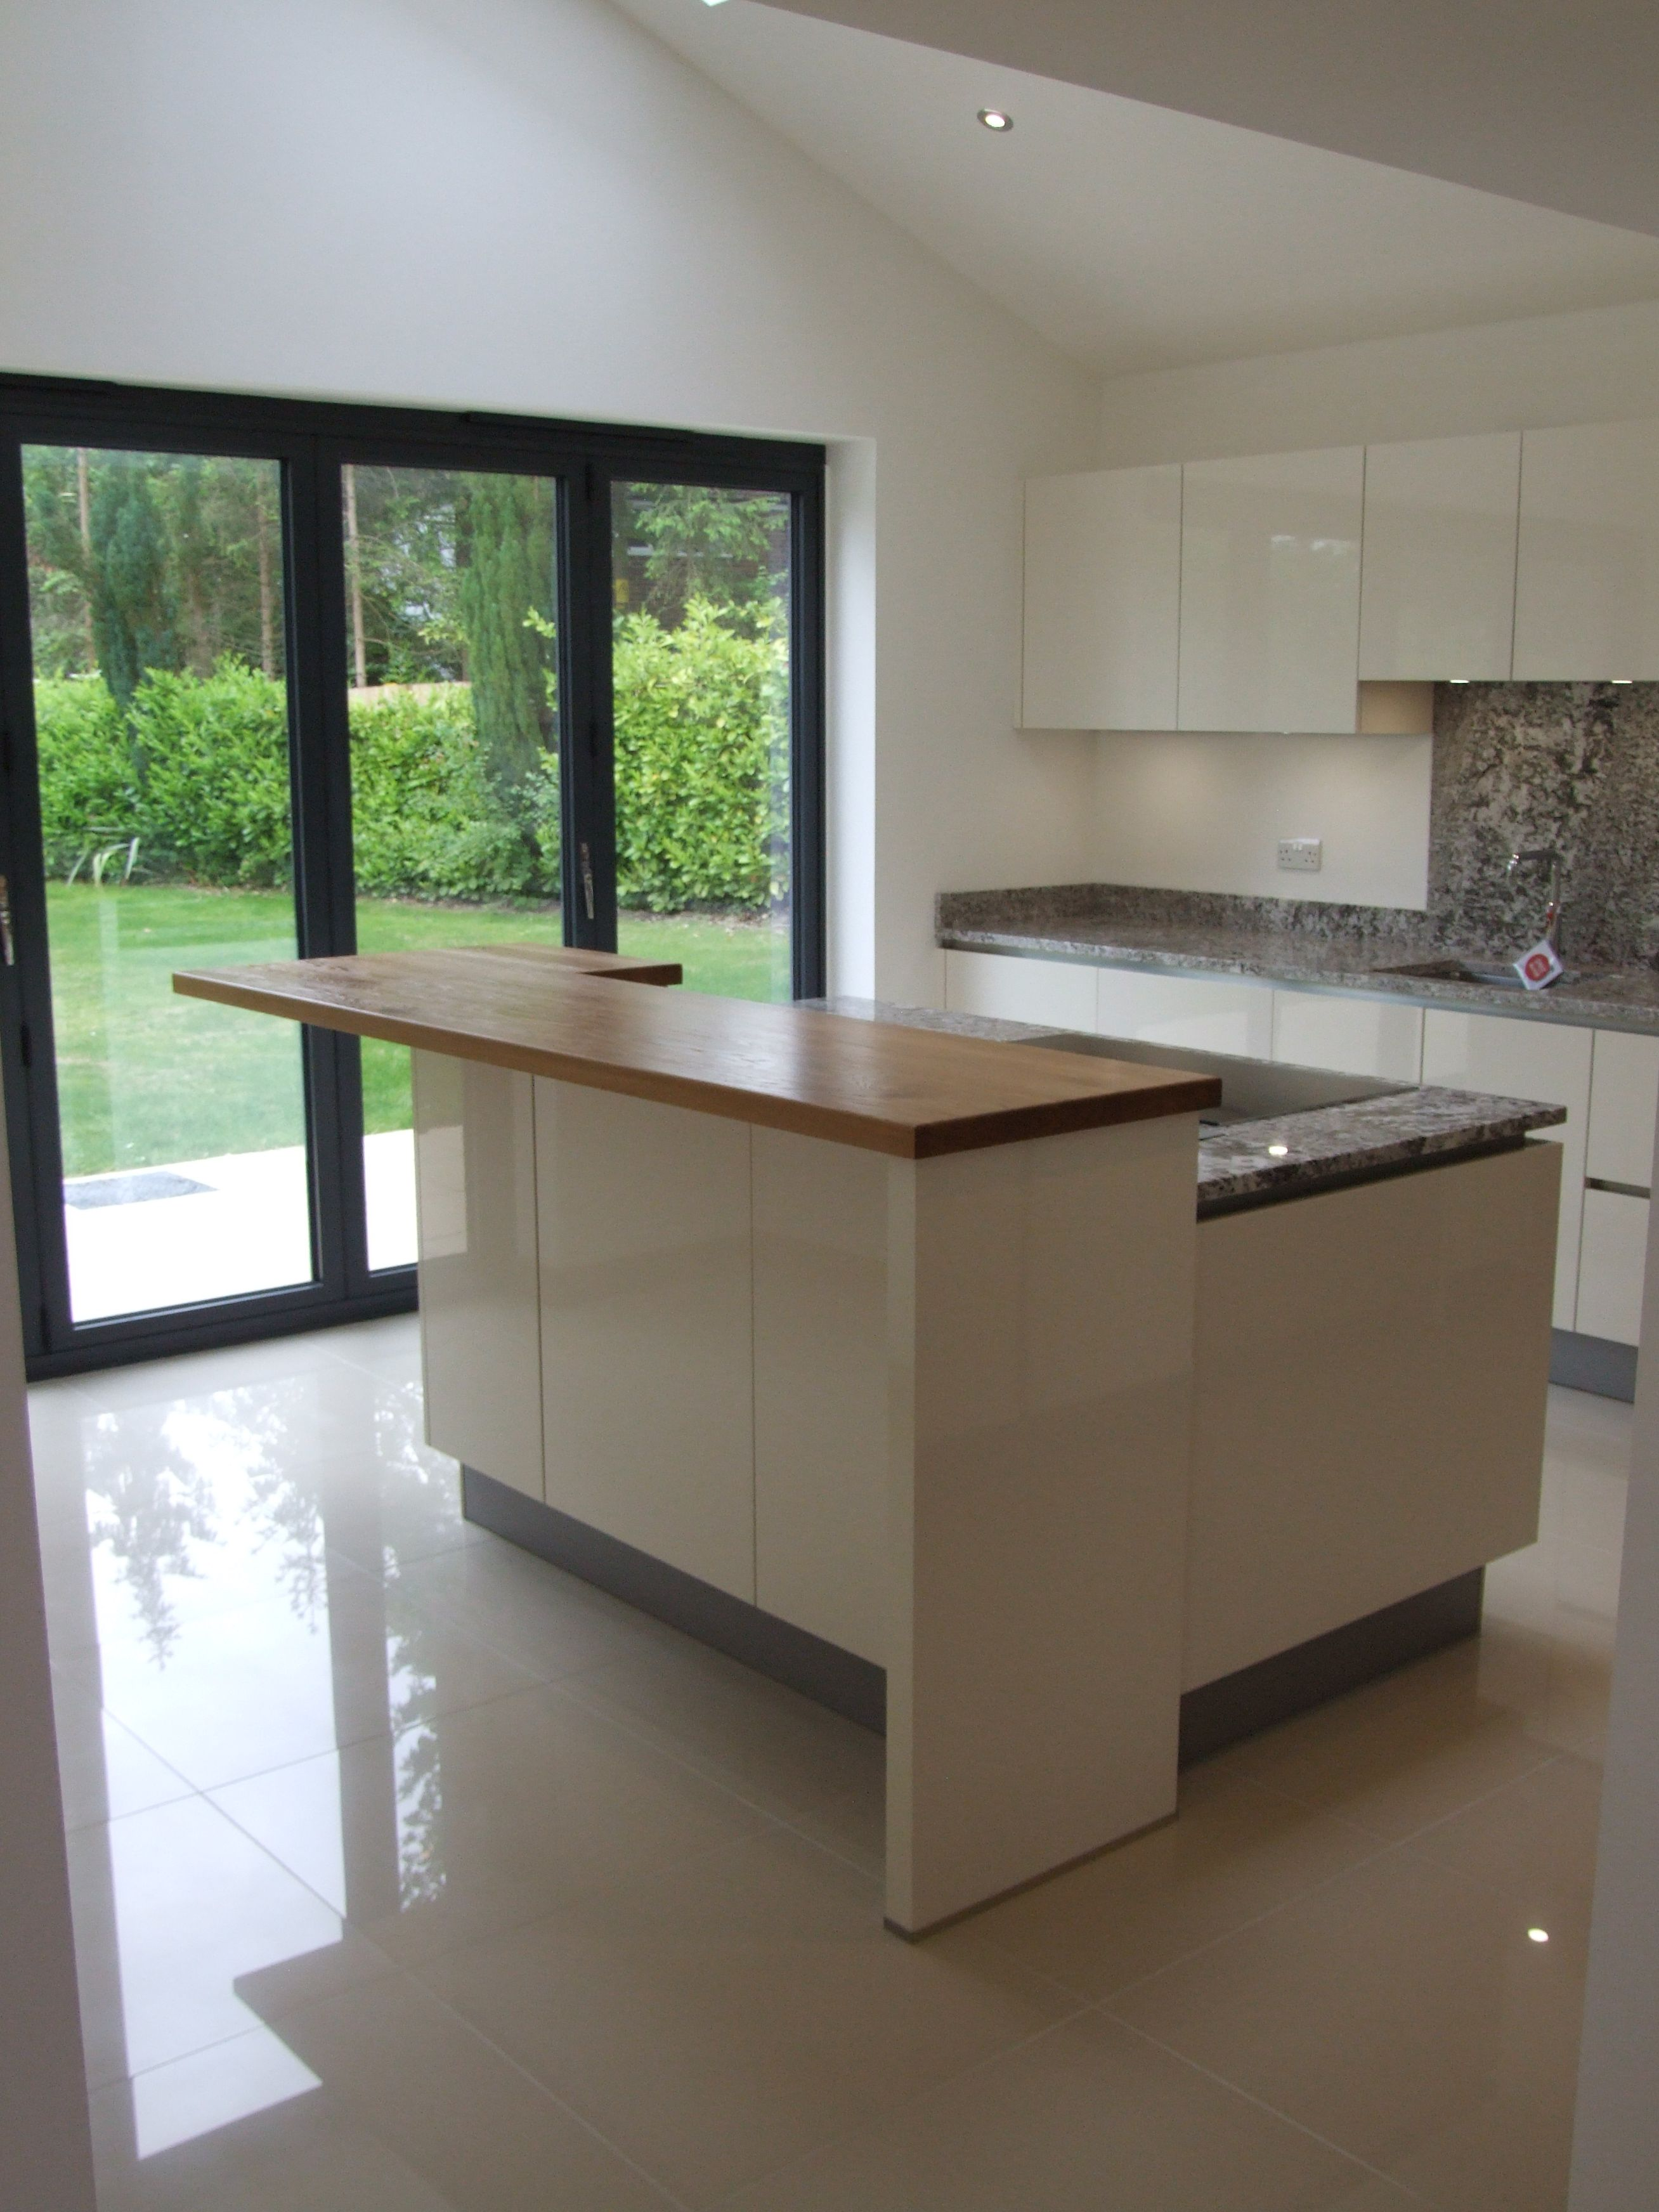 this enticingly light and airy kitchen consists of high gloss